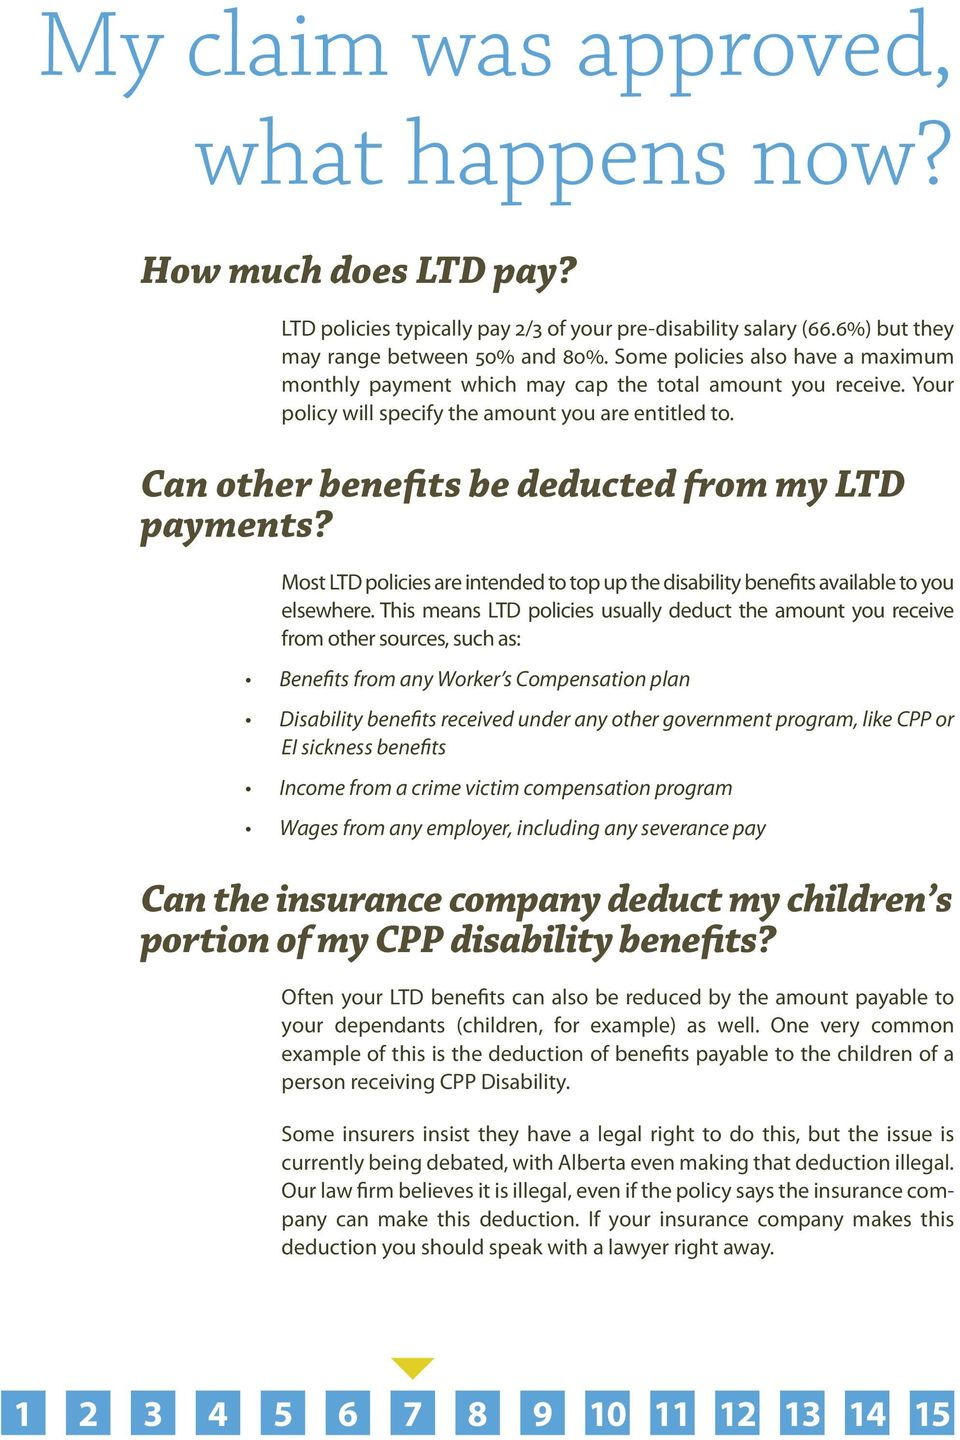 Can other benefits be deducted from my LTD payments? Most LTD policies are intended to top up the disability benefits available to you elsewhere.